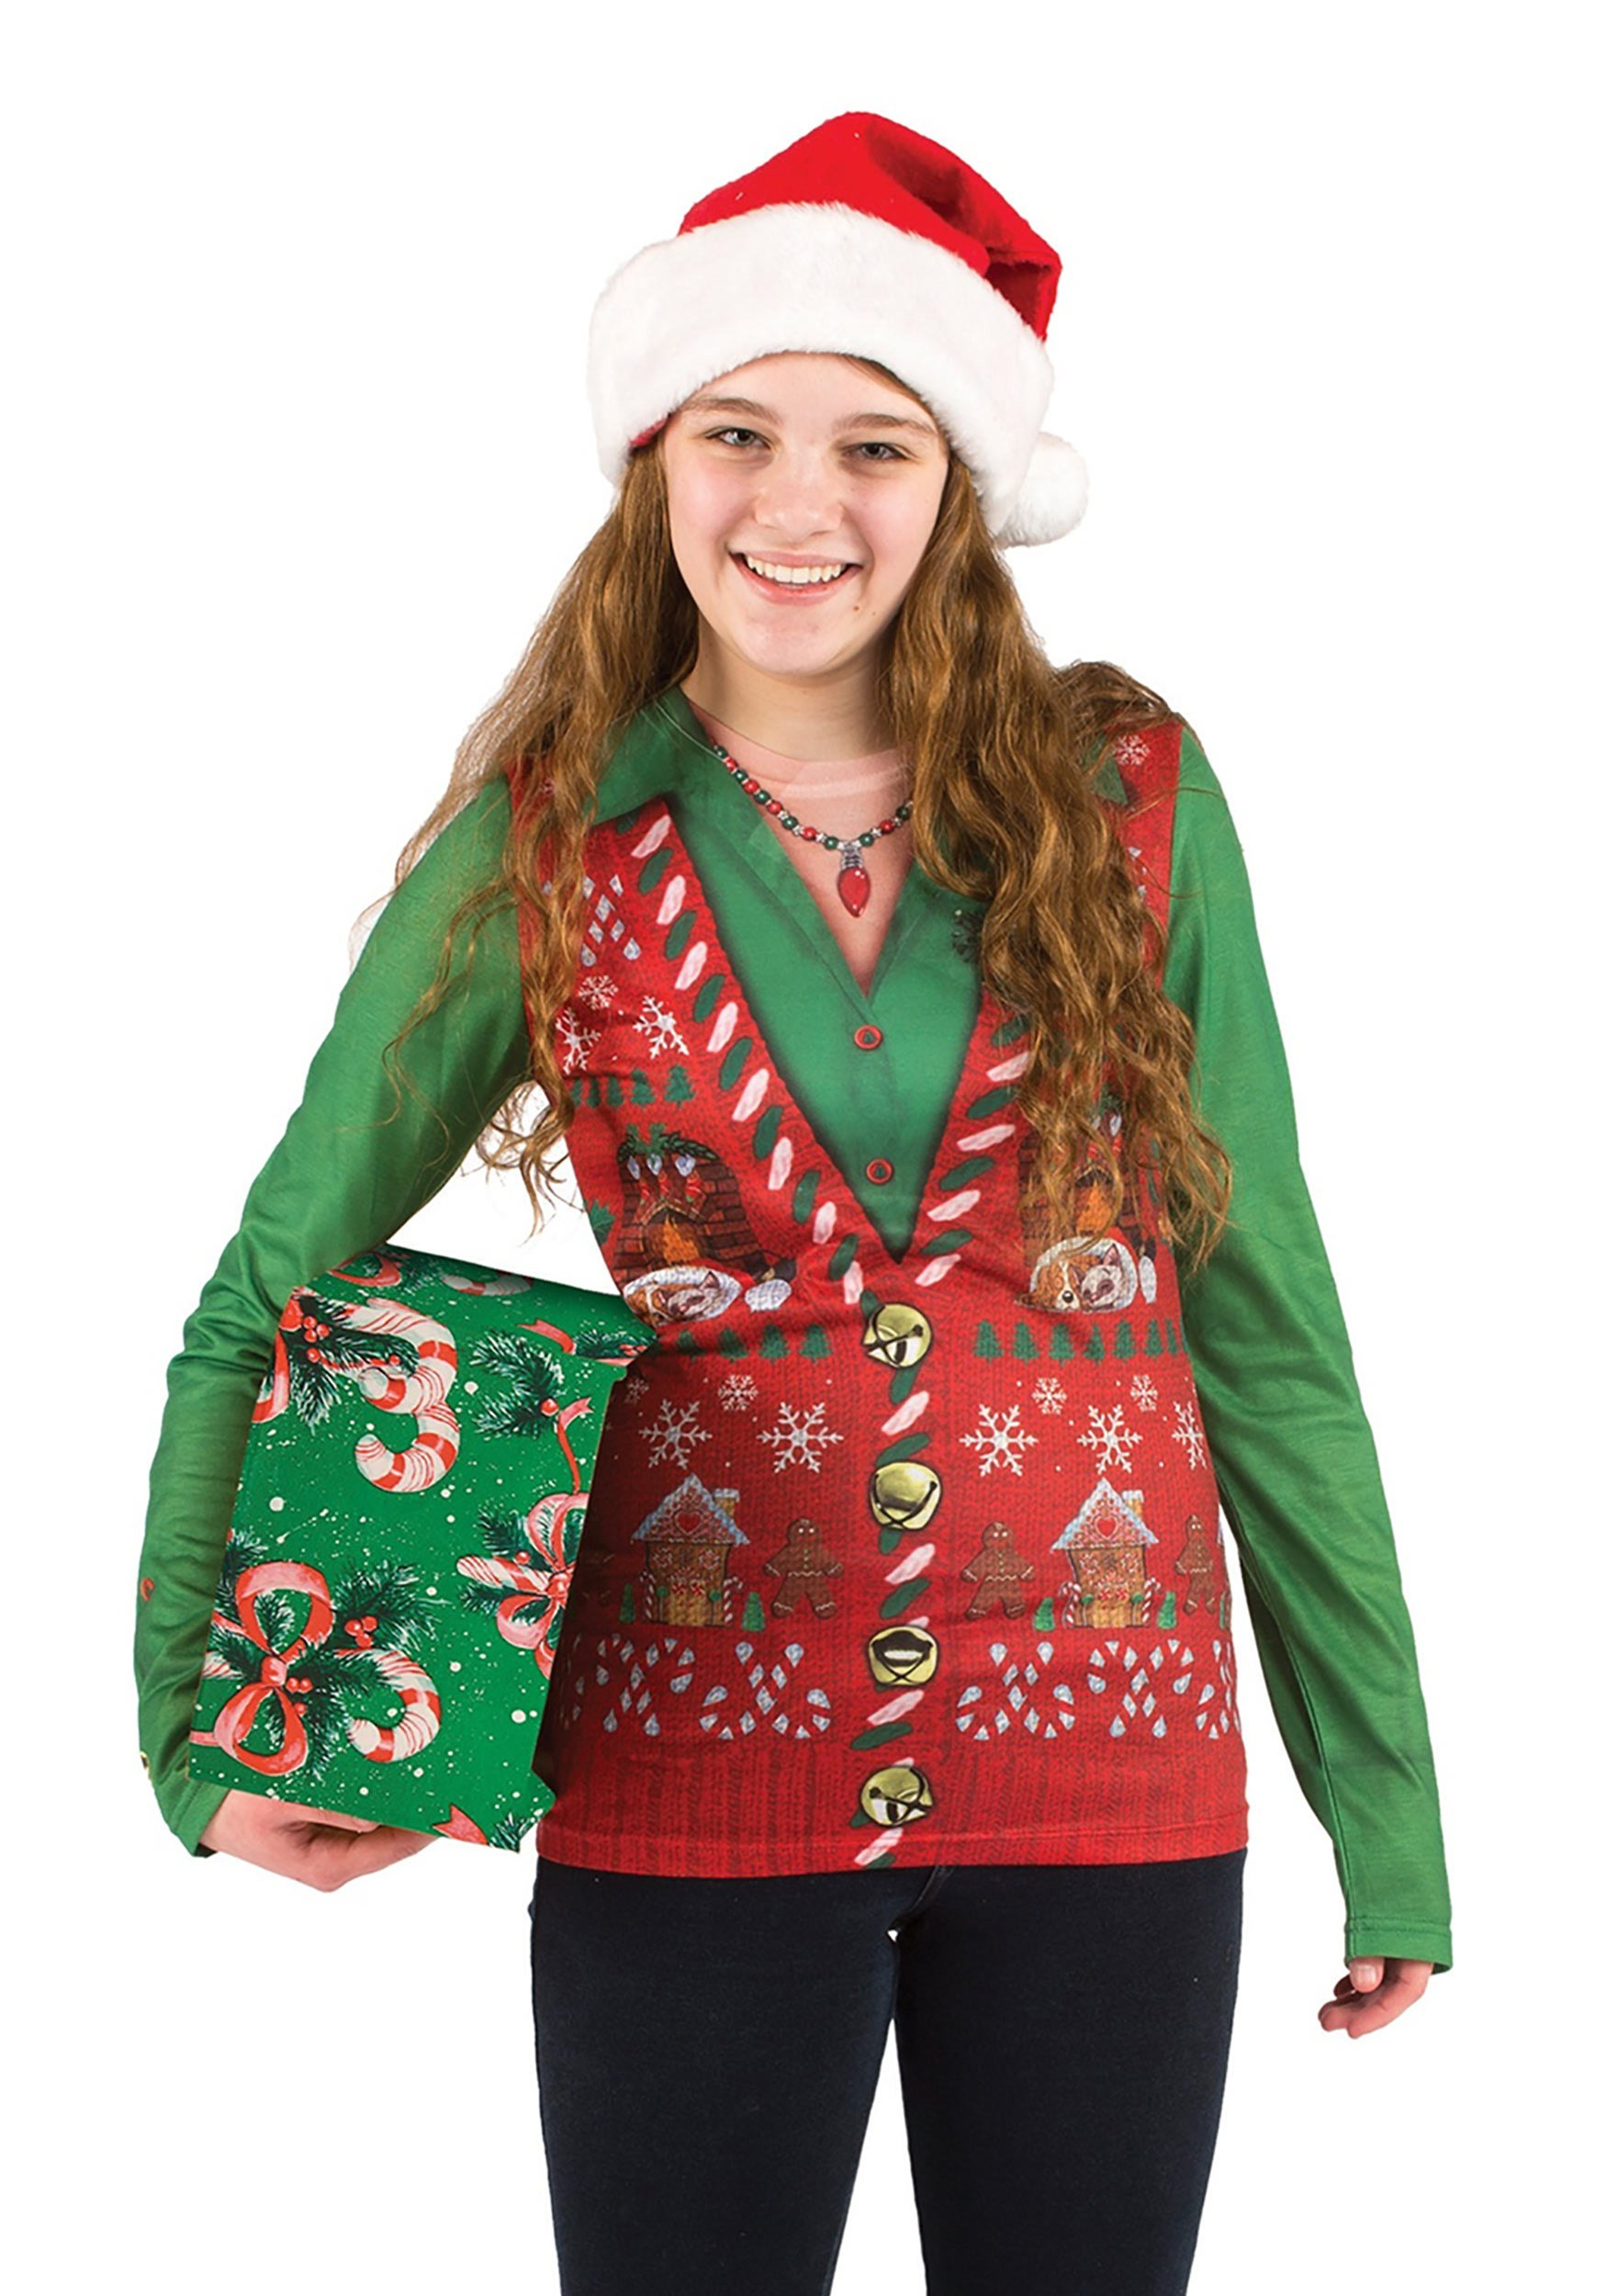 Gone are the days of raiding our grandparents' and parents' closets for ugly Christmas sweaters. Online retailers have caught on that our want for more and more kitschy Christmas attire, doesn't appear to be going anywhere soon.